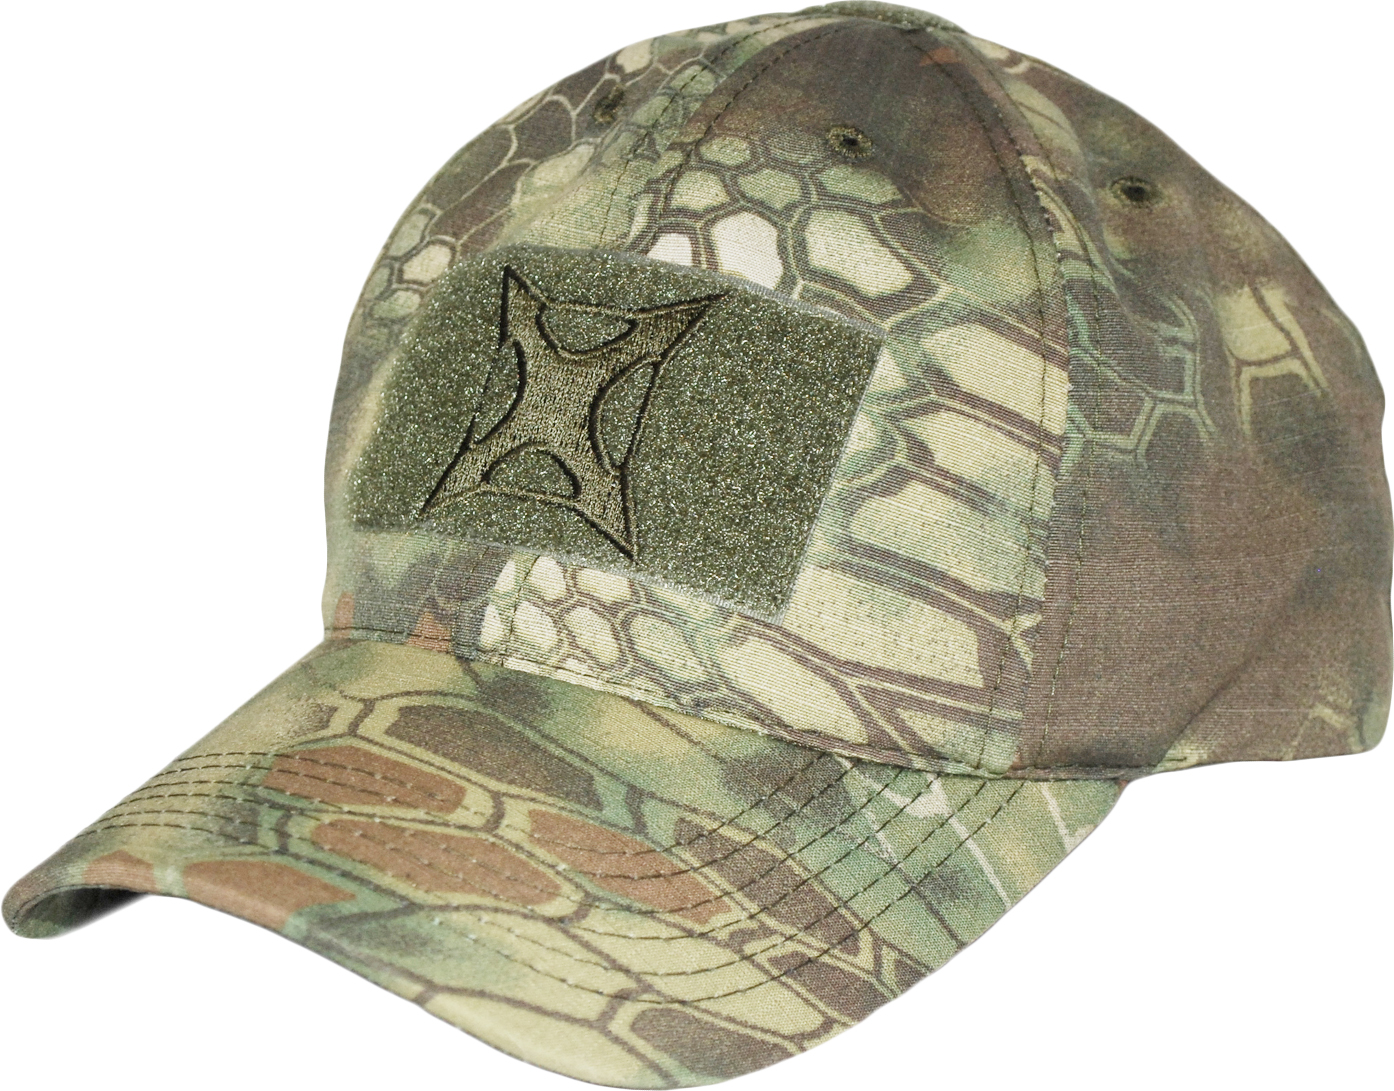 Vertx Kryptek Hat w/Velcro Patches and Embroidery